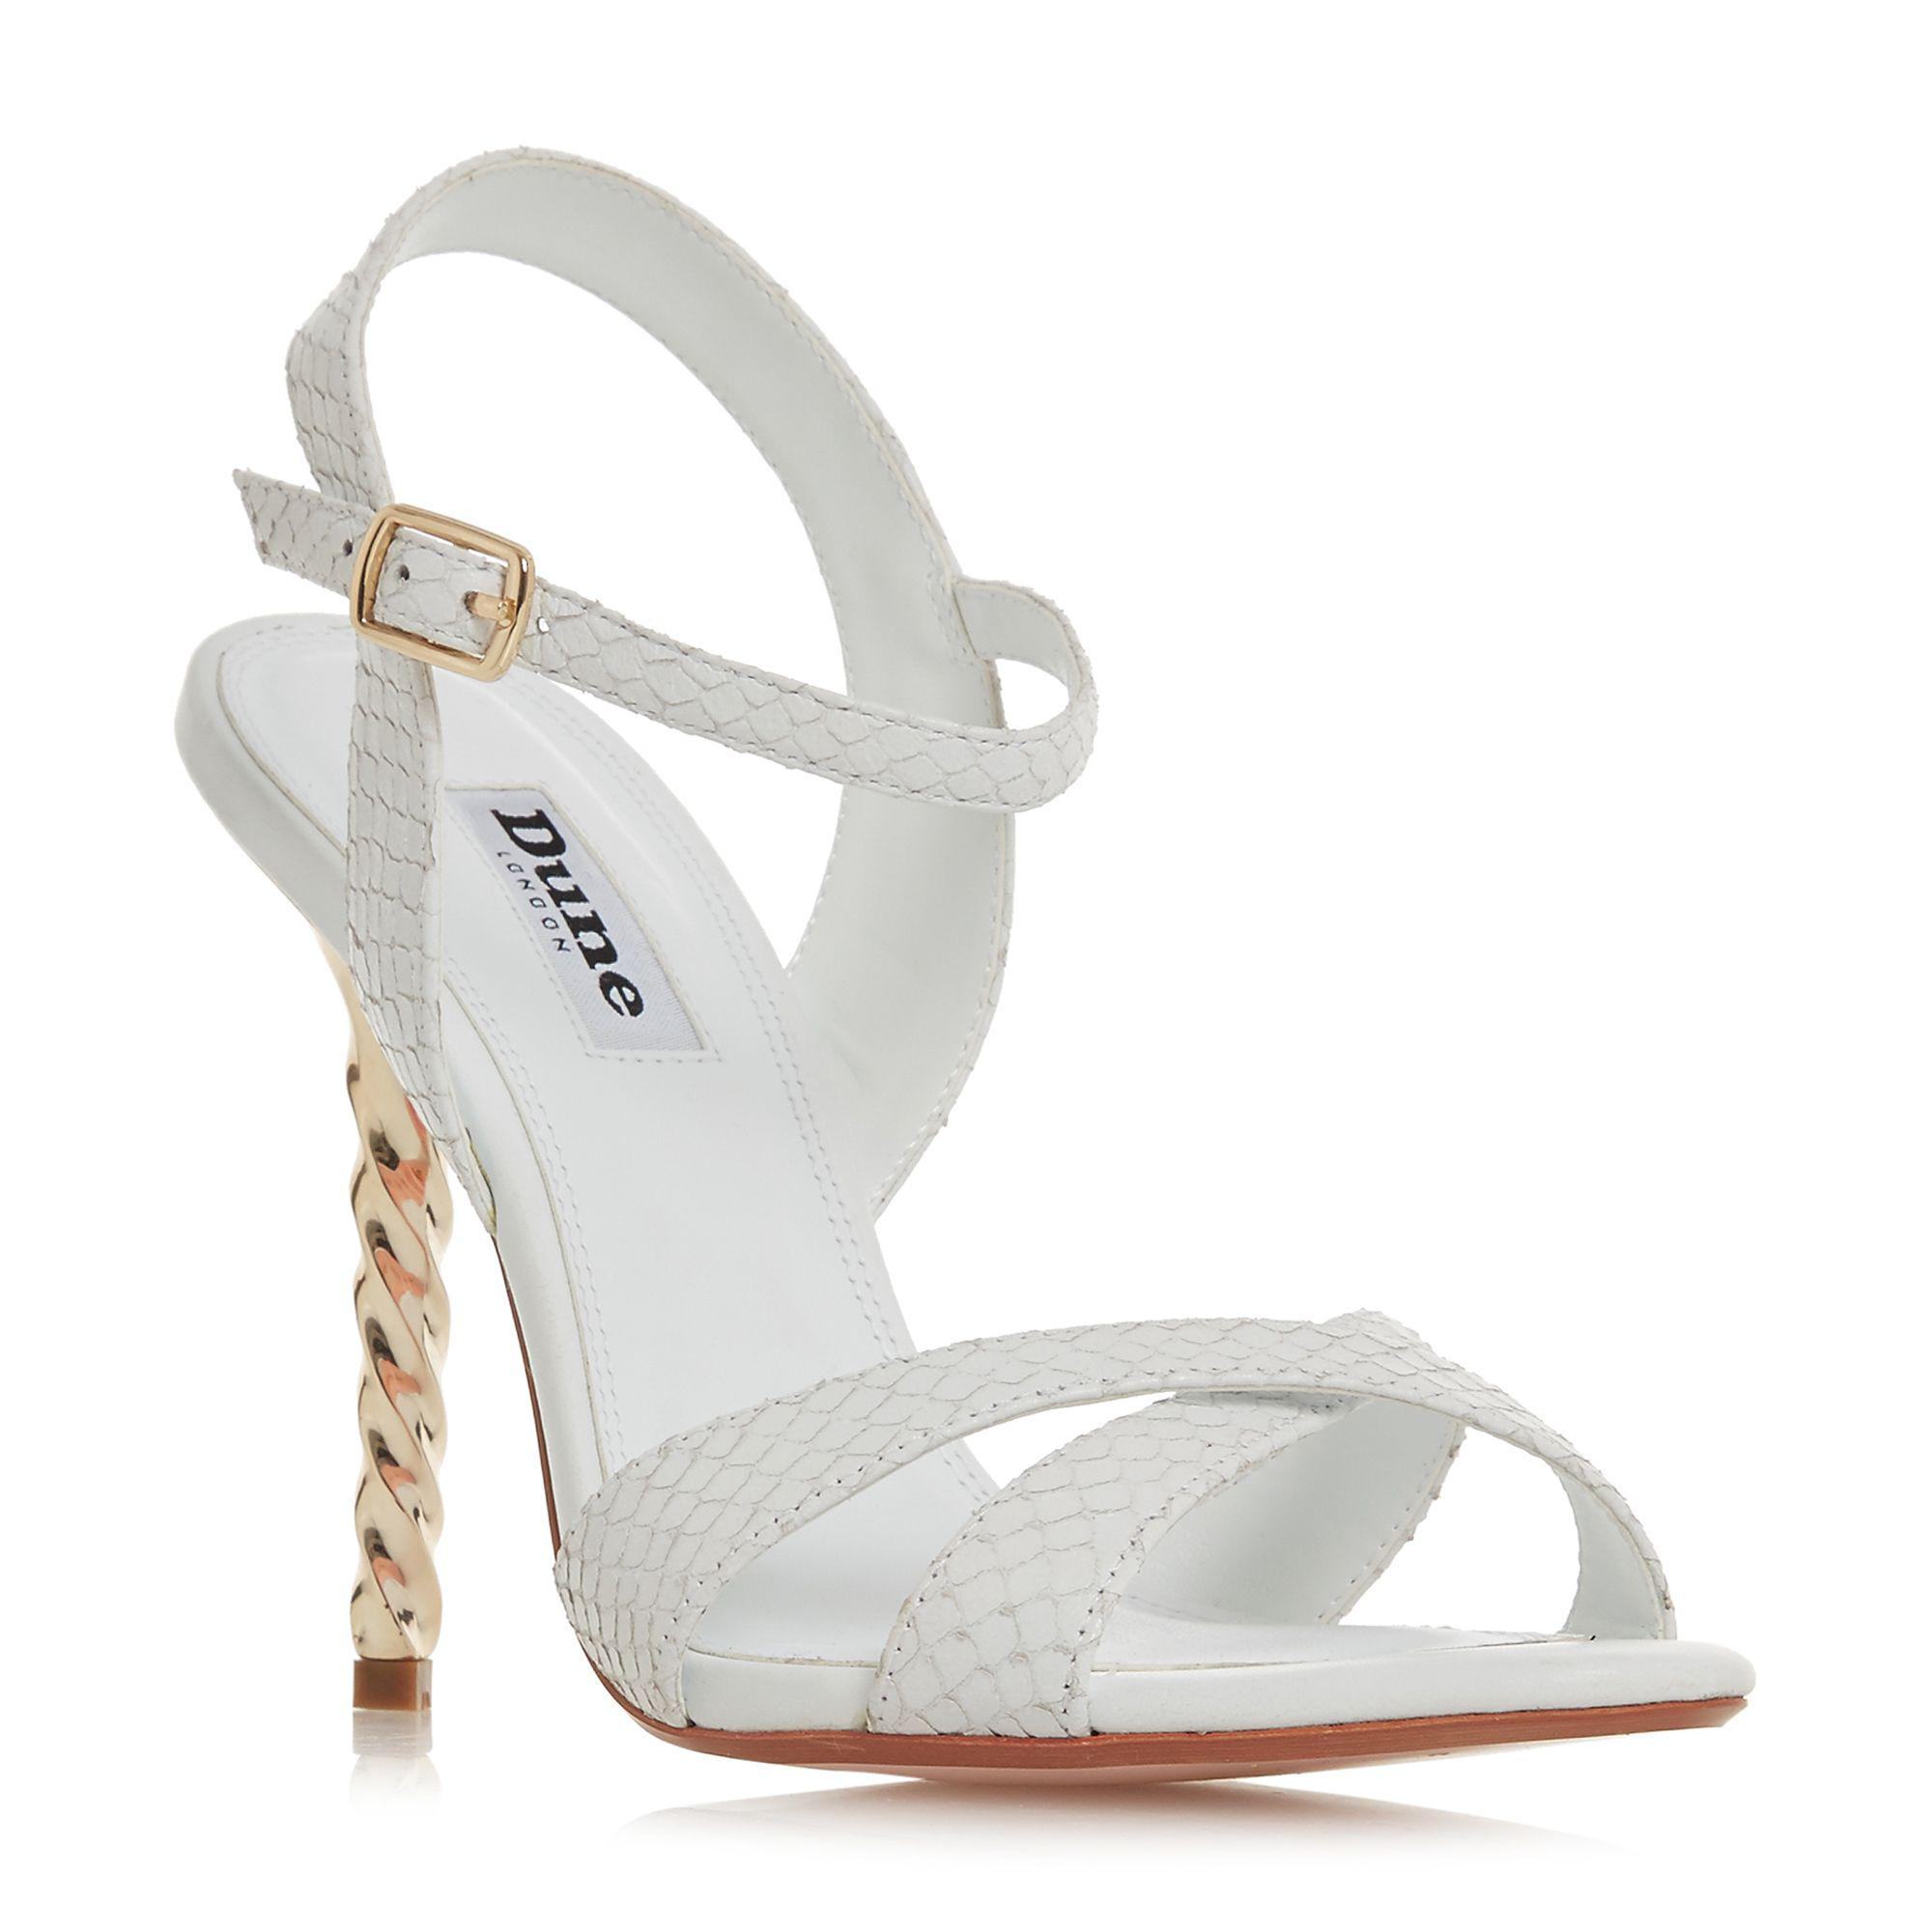 8782d4b72e Dune. Women's White Leather 'magician' High Stiletto Heel Ankle Strap  Sandals